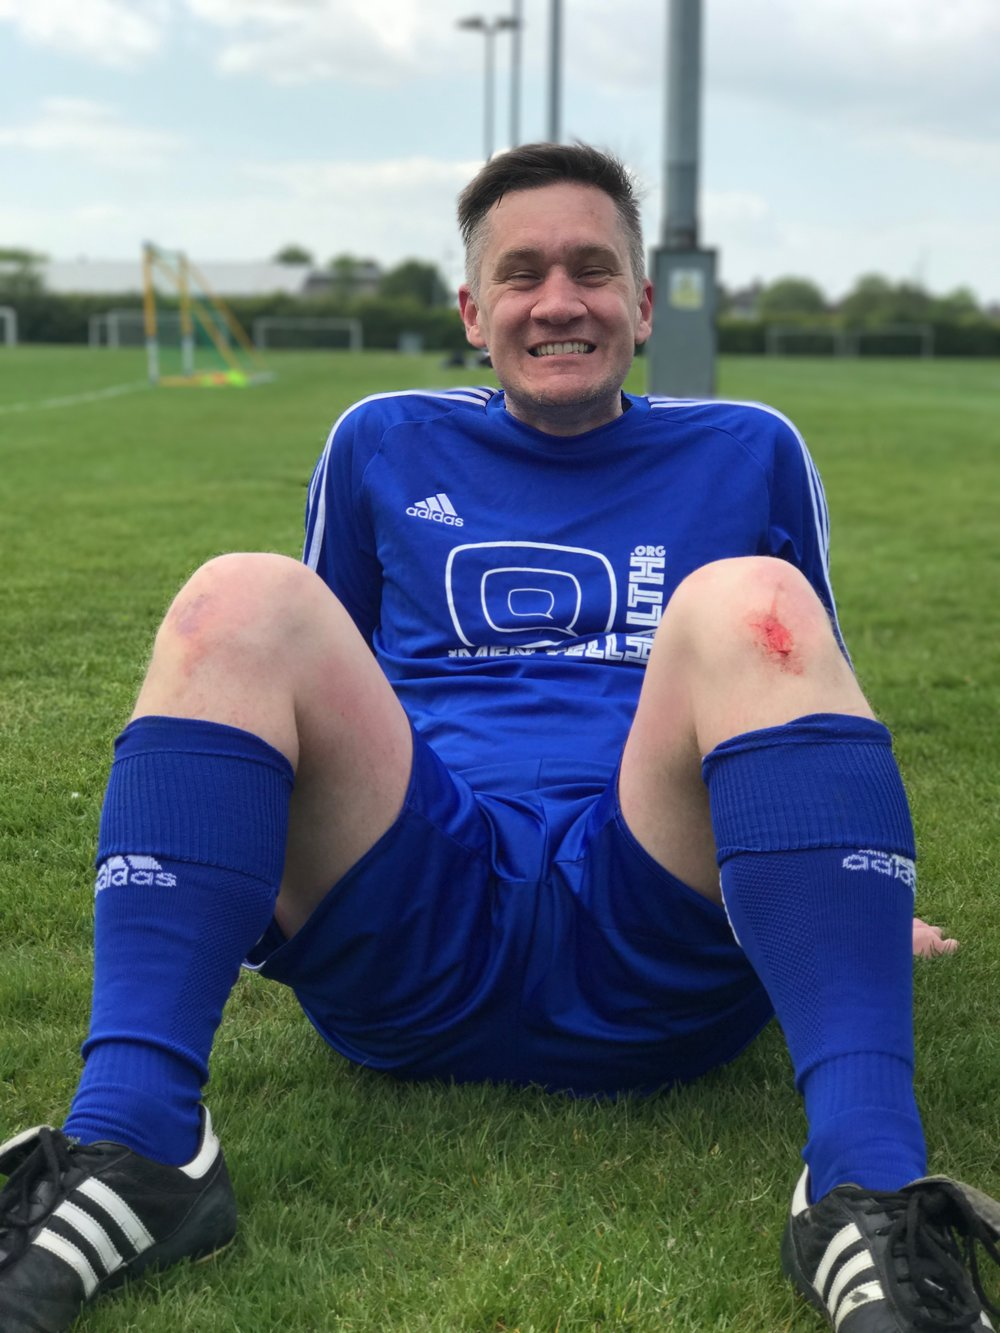 James proudly displays his war wounds. Rumour that it's actually tomato ketchup he spilt on his leg while eating a cheeseburger are unfounded.